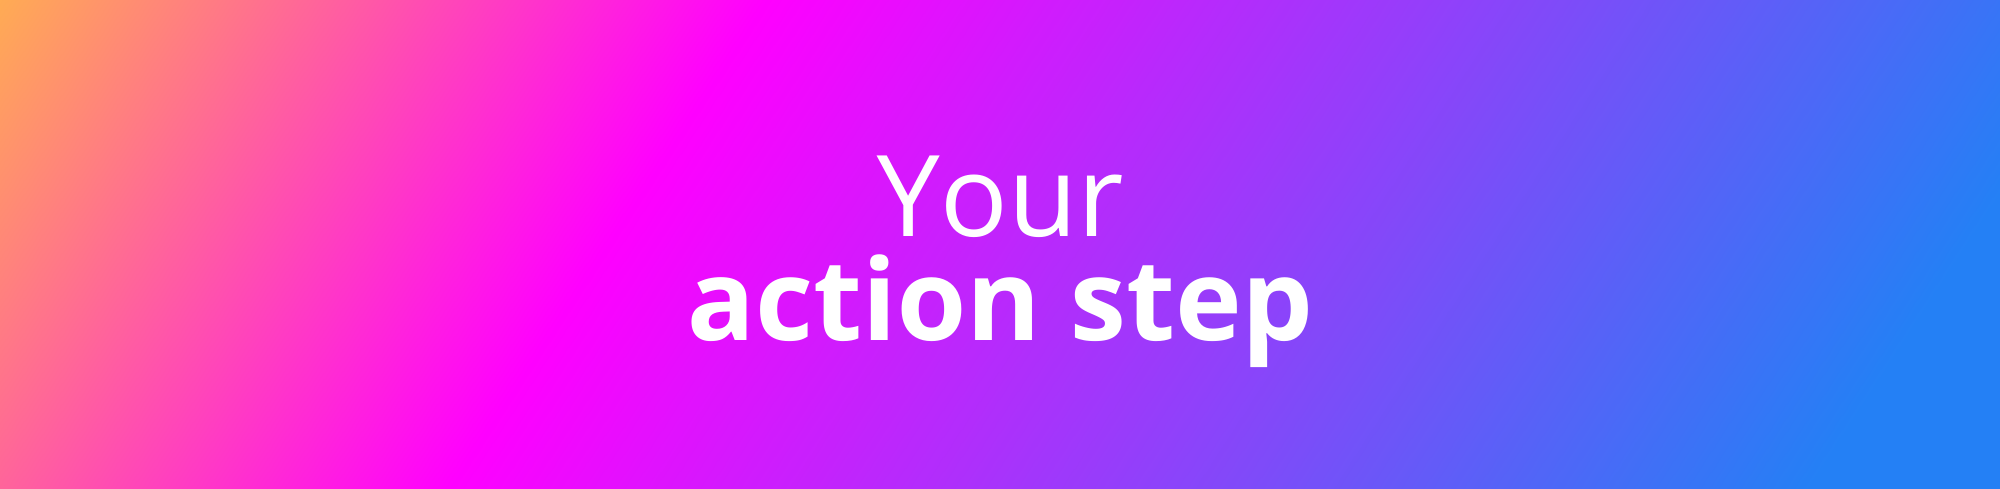 Your action step